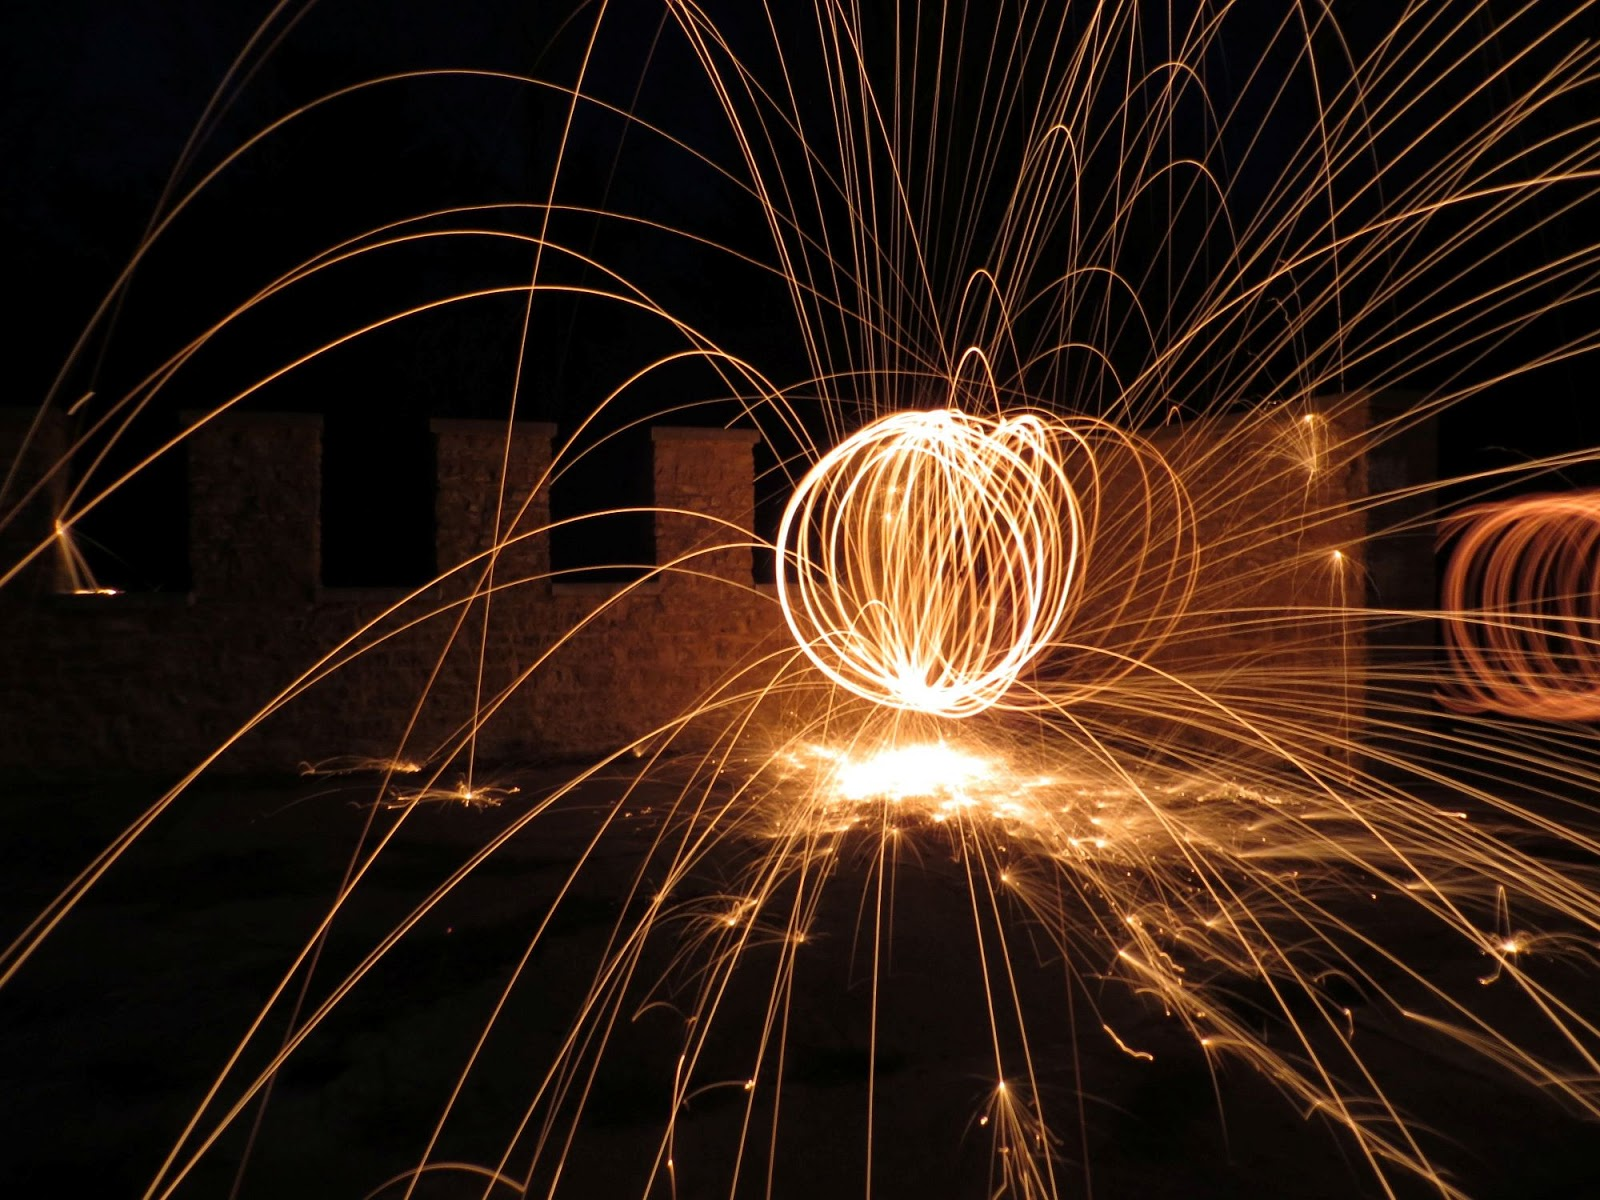 http://www.boostyourphotography.com/2013/04/spinning-fire-with-steel-wool.html